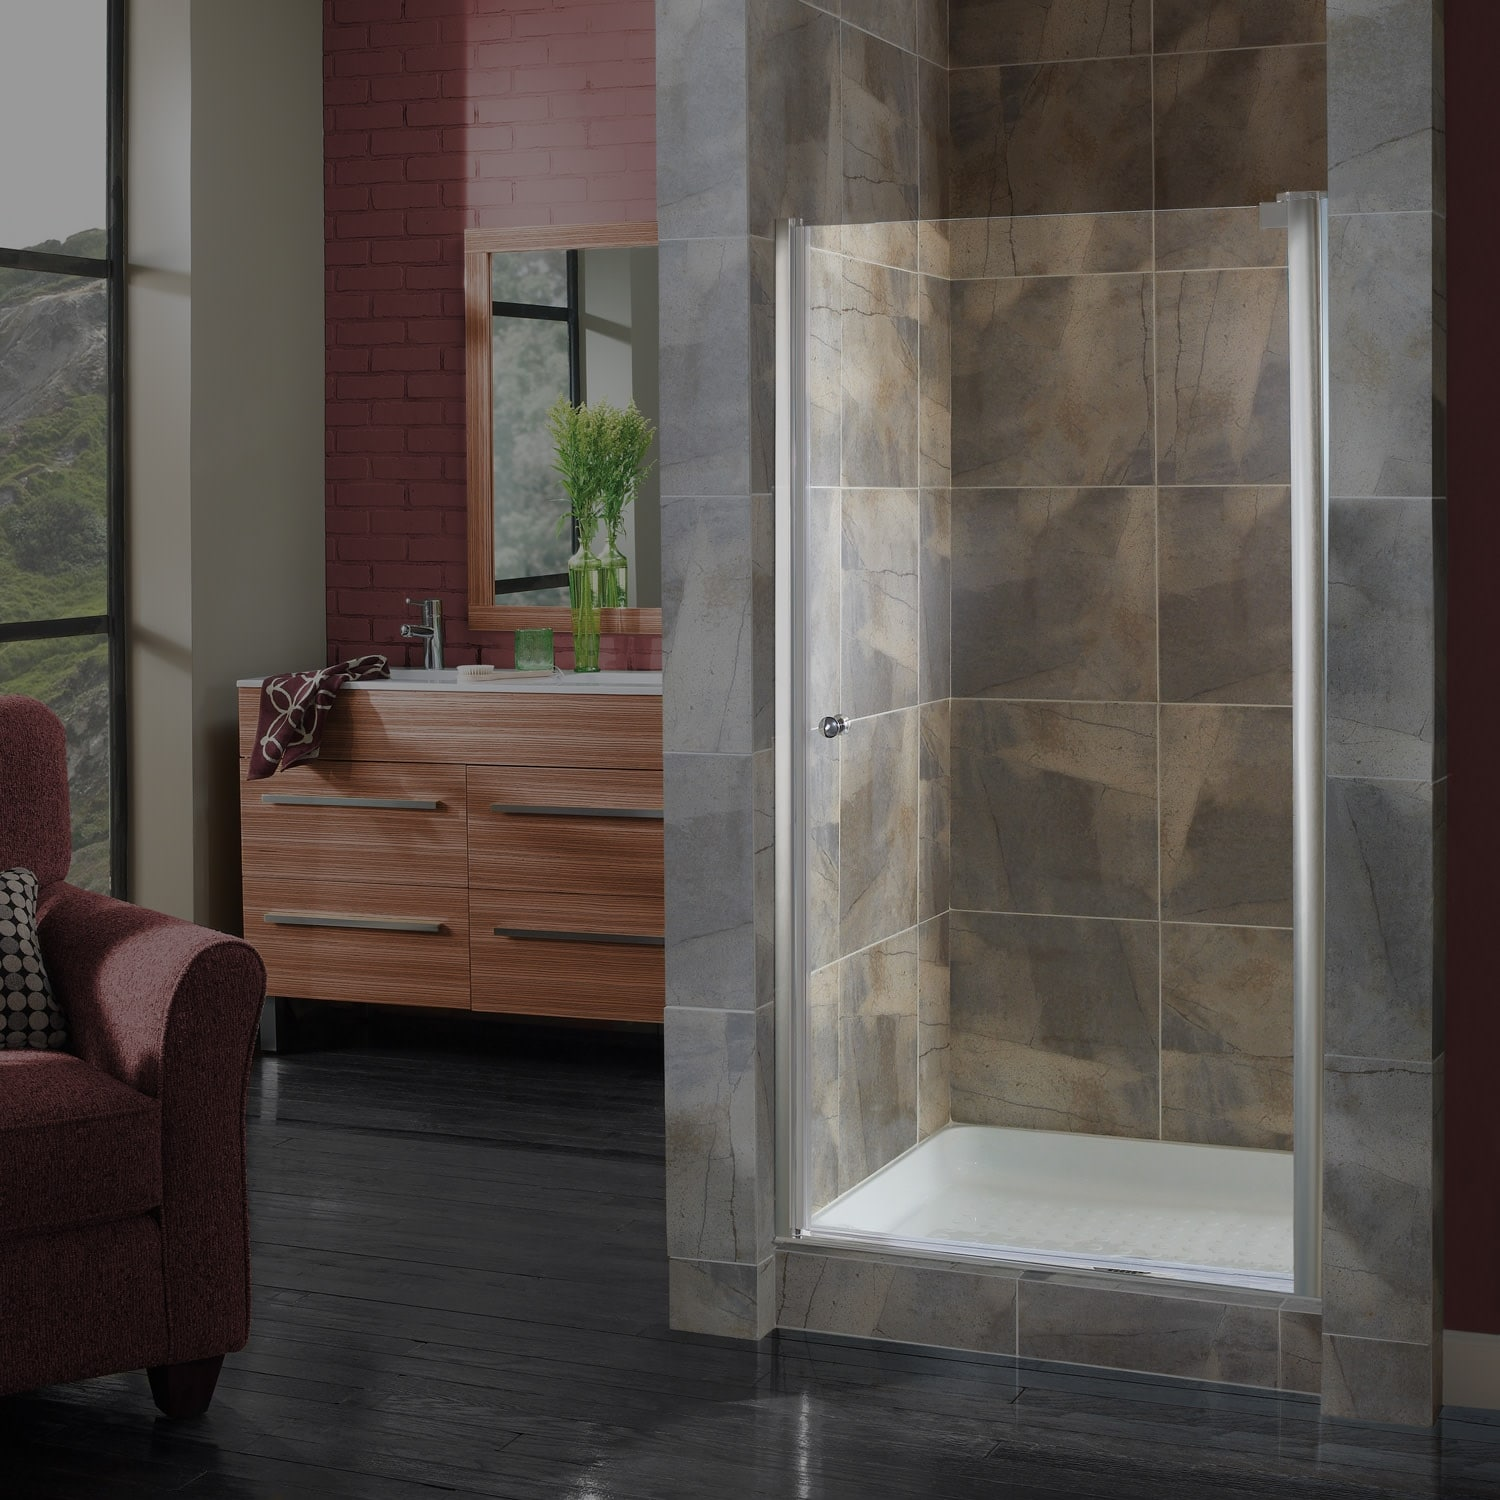 Miseno Msd3572clq Pivot 72 High X 32 1 2 34 1 2 Wide Hinged Frameless Shower Door With 1 4 Clear Glass